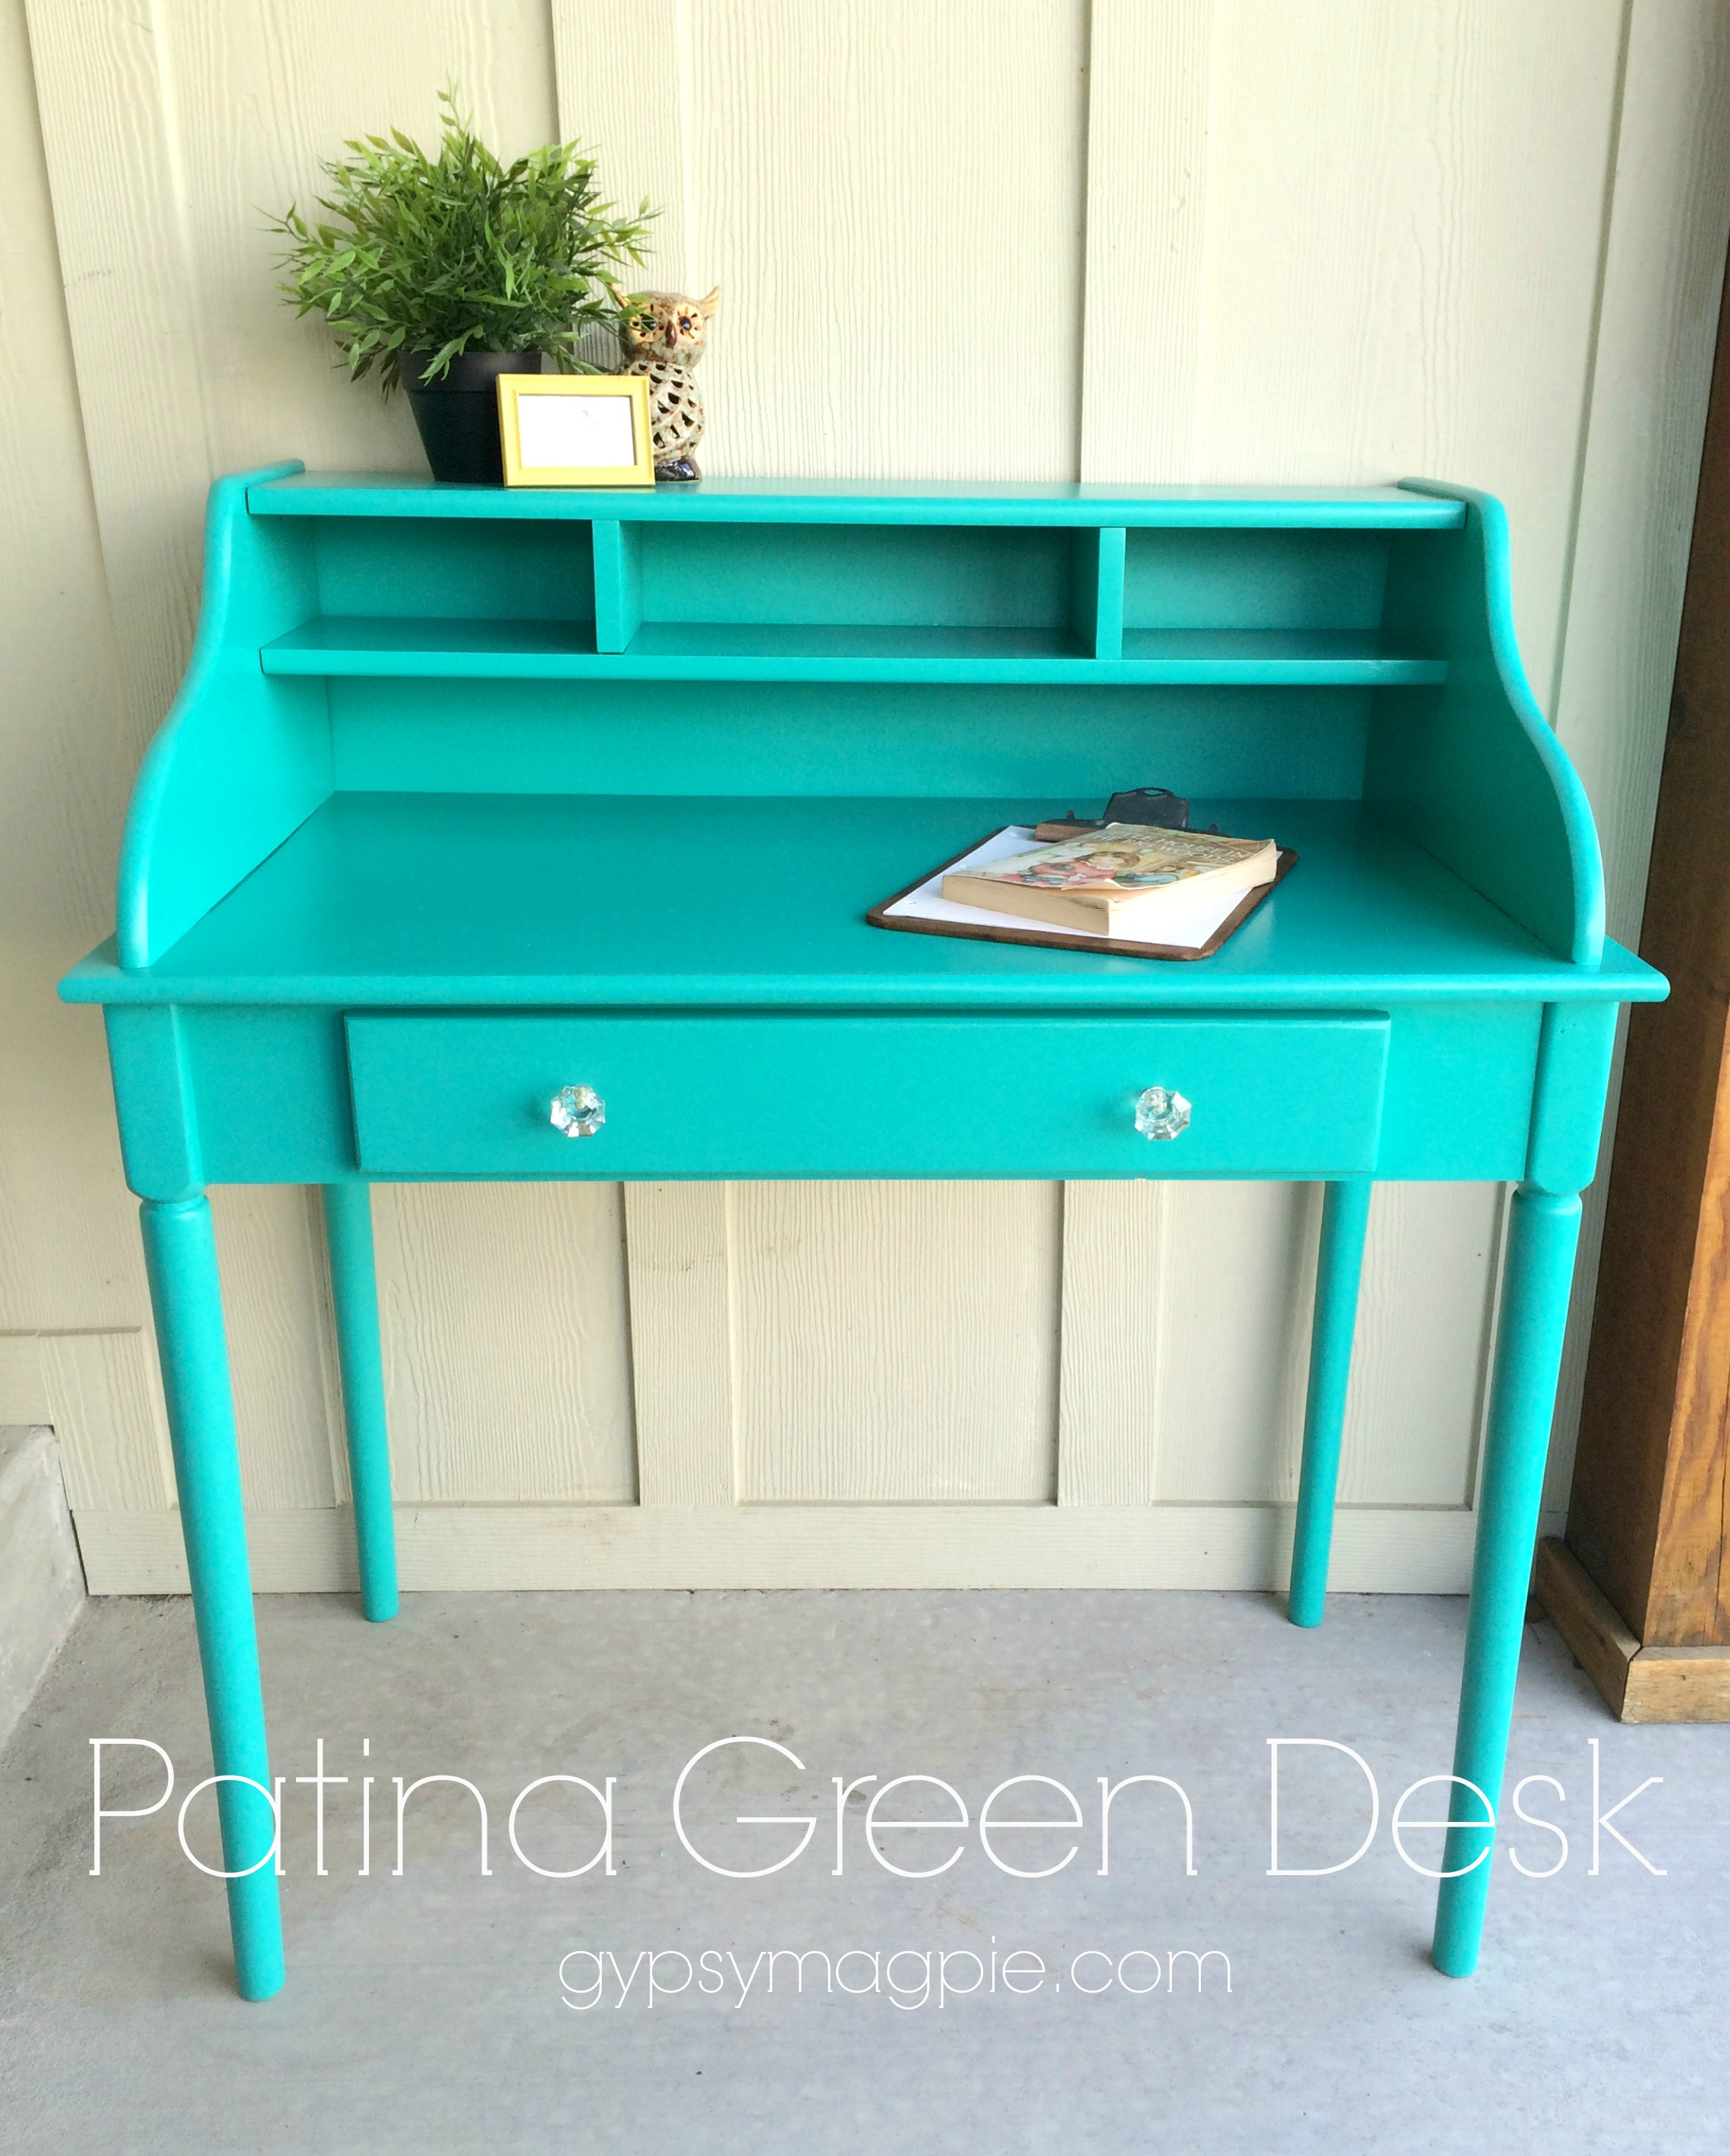 Patina Green Desk {Gypsy Magpie}